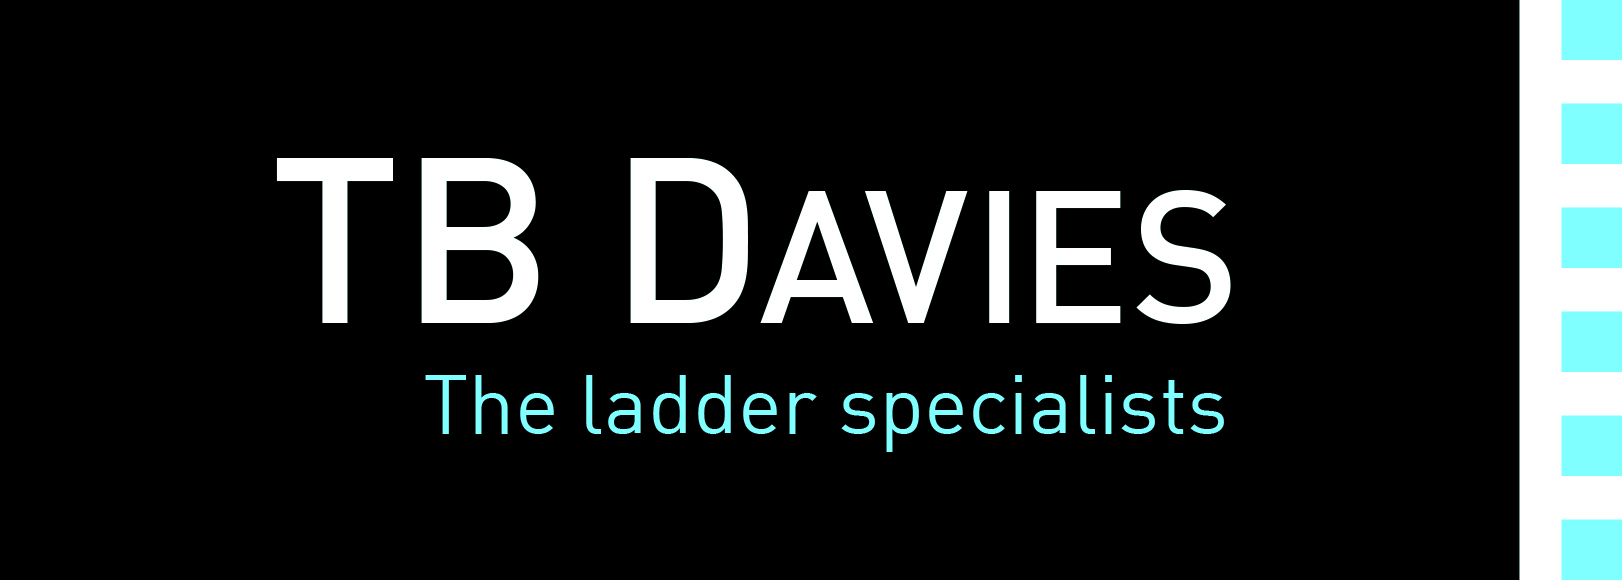 TB Davies official logo